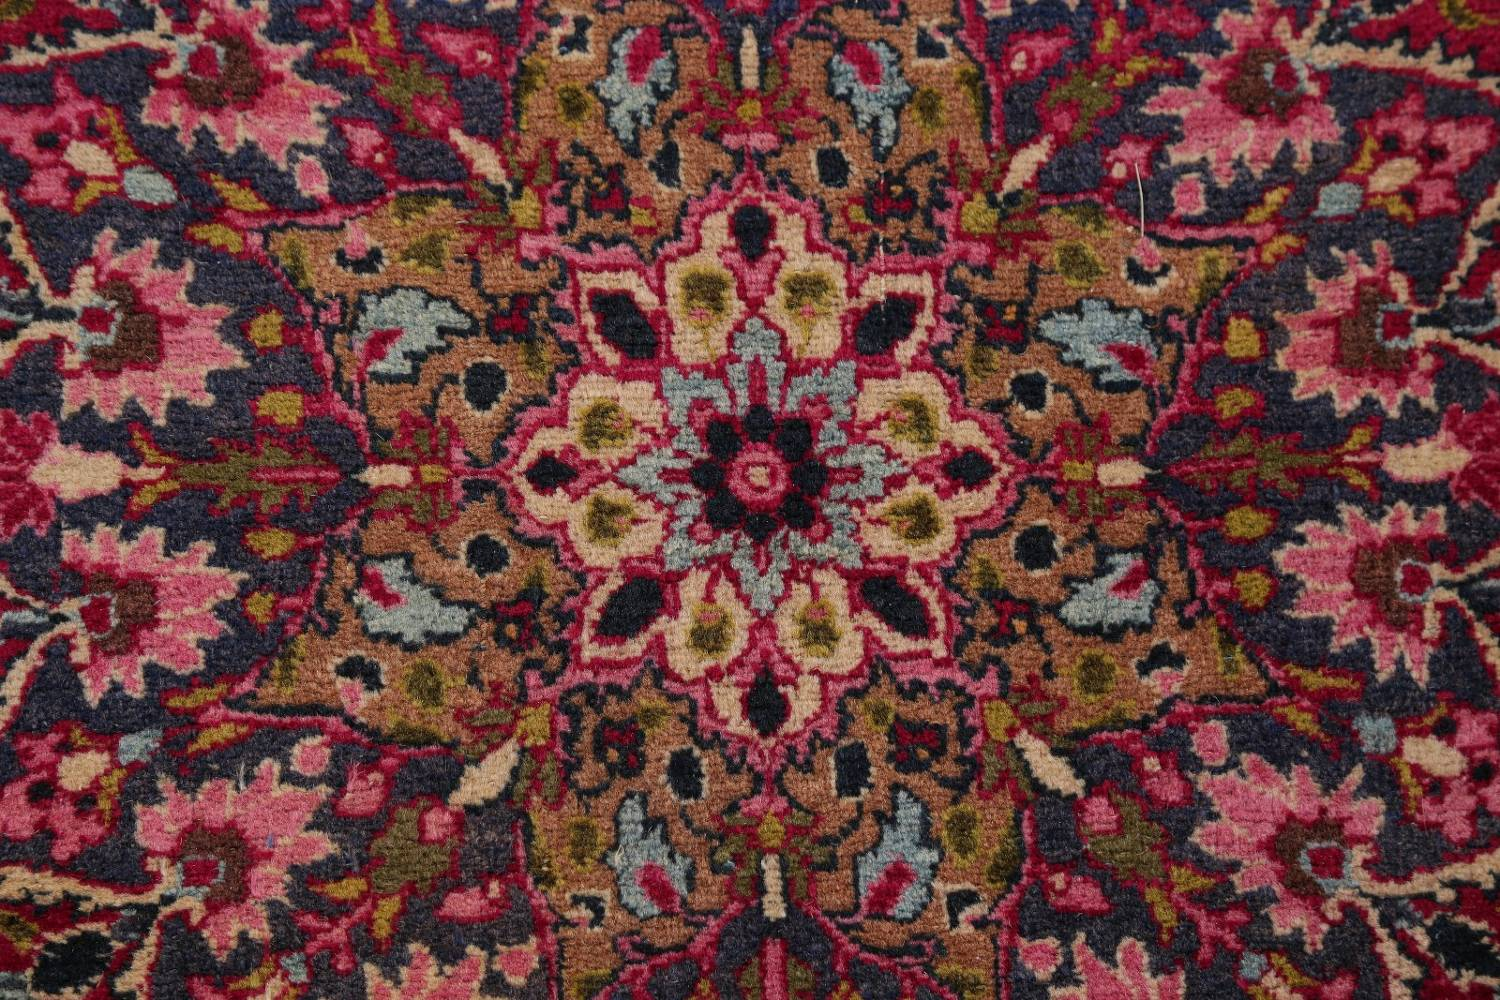 All-Over Floral 11x16 Mashad Persian Area Rug image 16